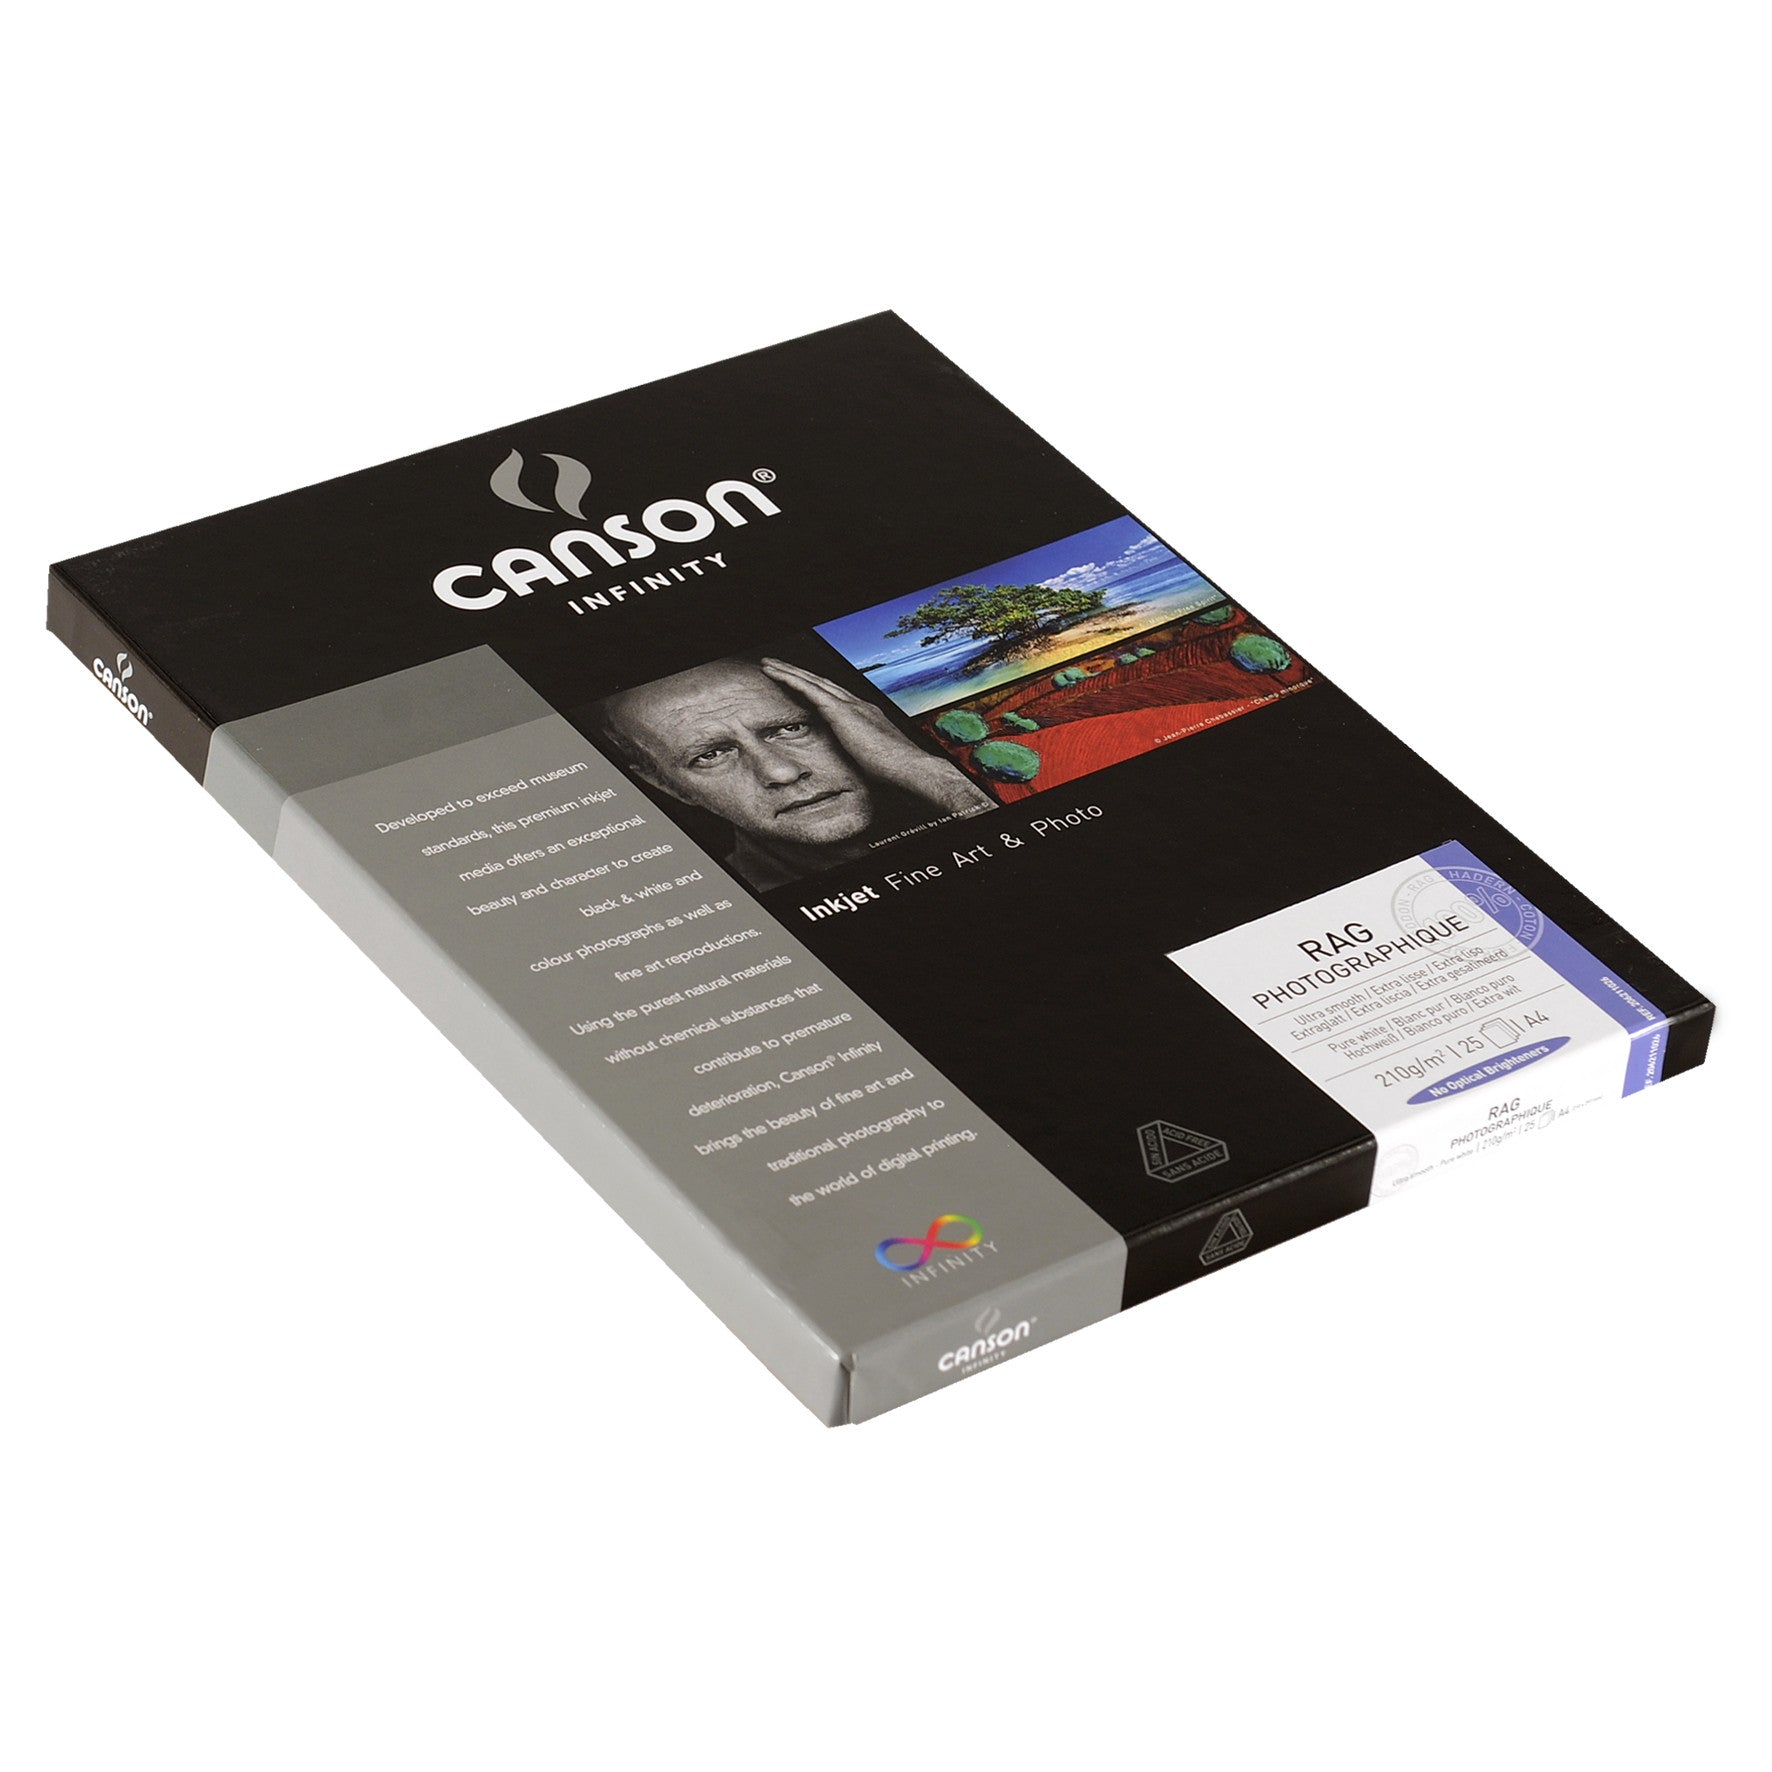 Canson Infinity Rag Photographique - 210gsm - A4 (25 sheets)